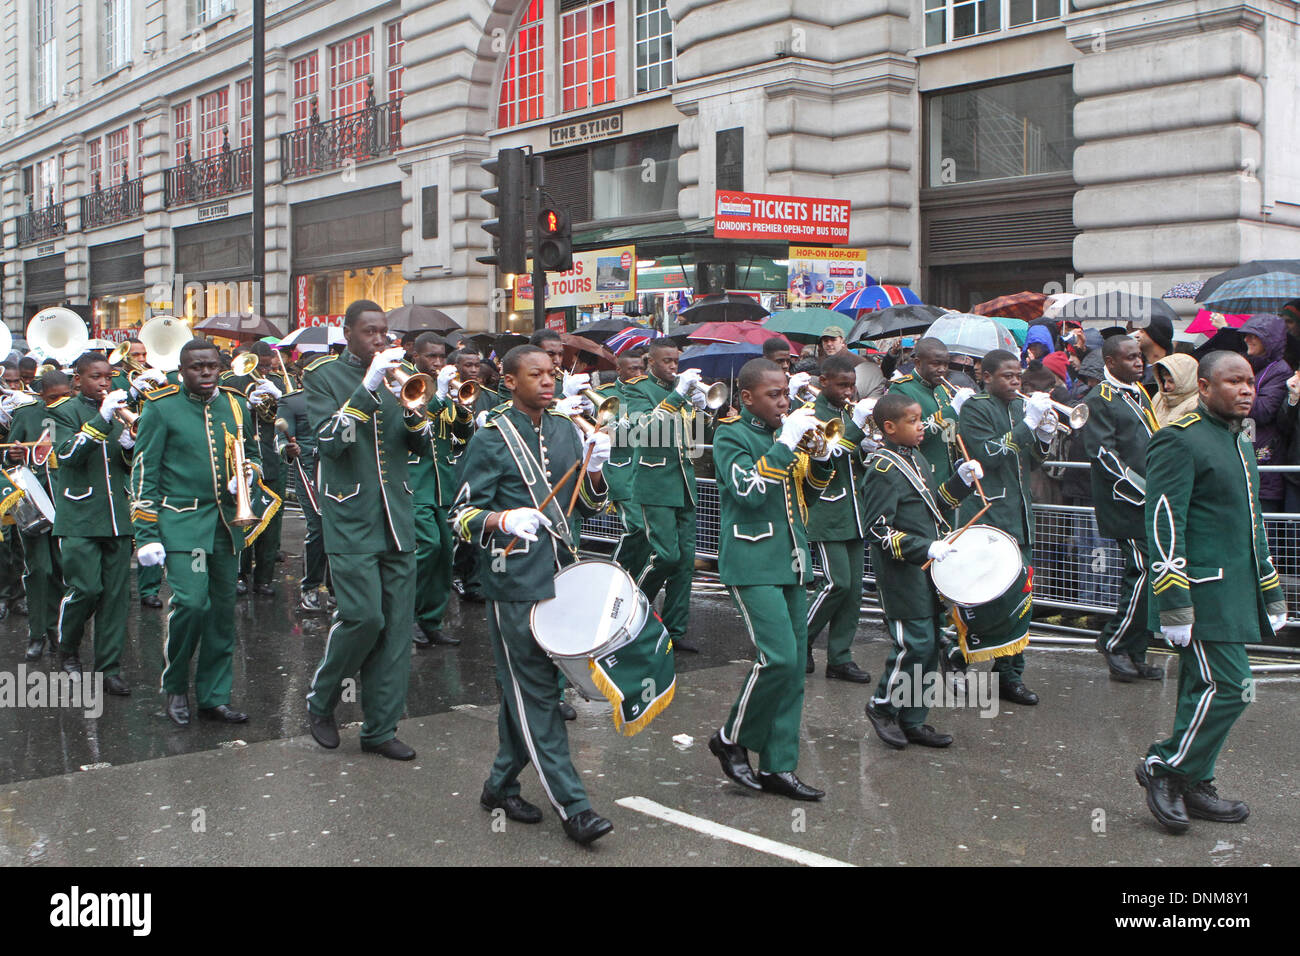 London,UK,1st January 2014,Kimbaguist Brass  Band marching at the London's New Year's Day Parade 201 Credit: Keith Larby/Alamy Live News - Stock Image